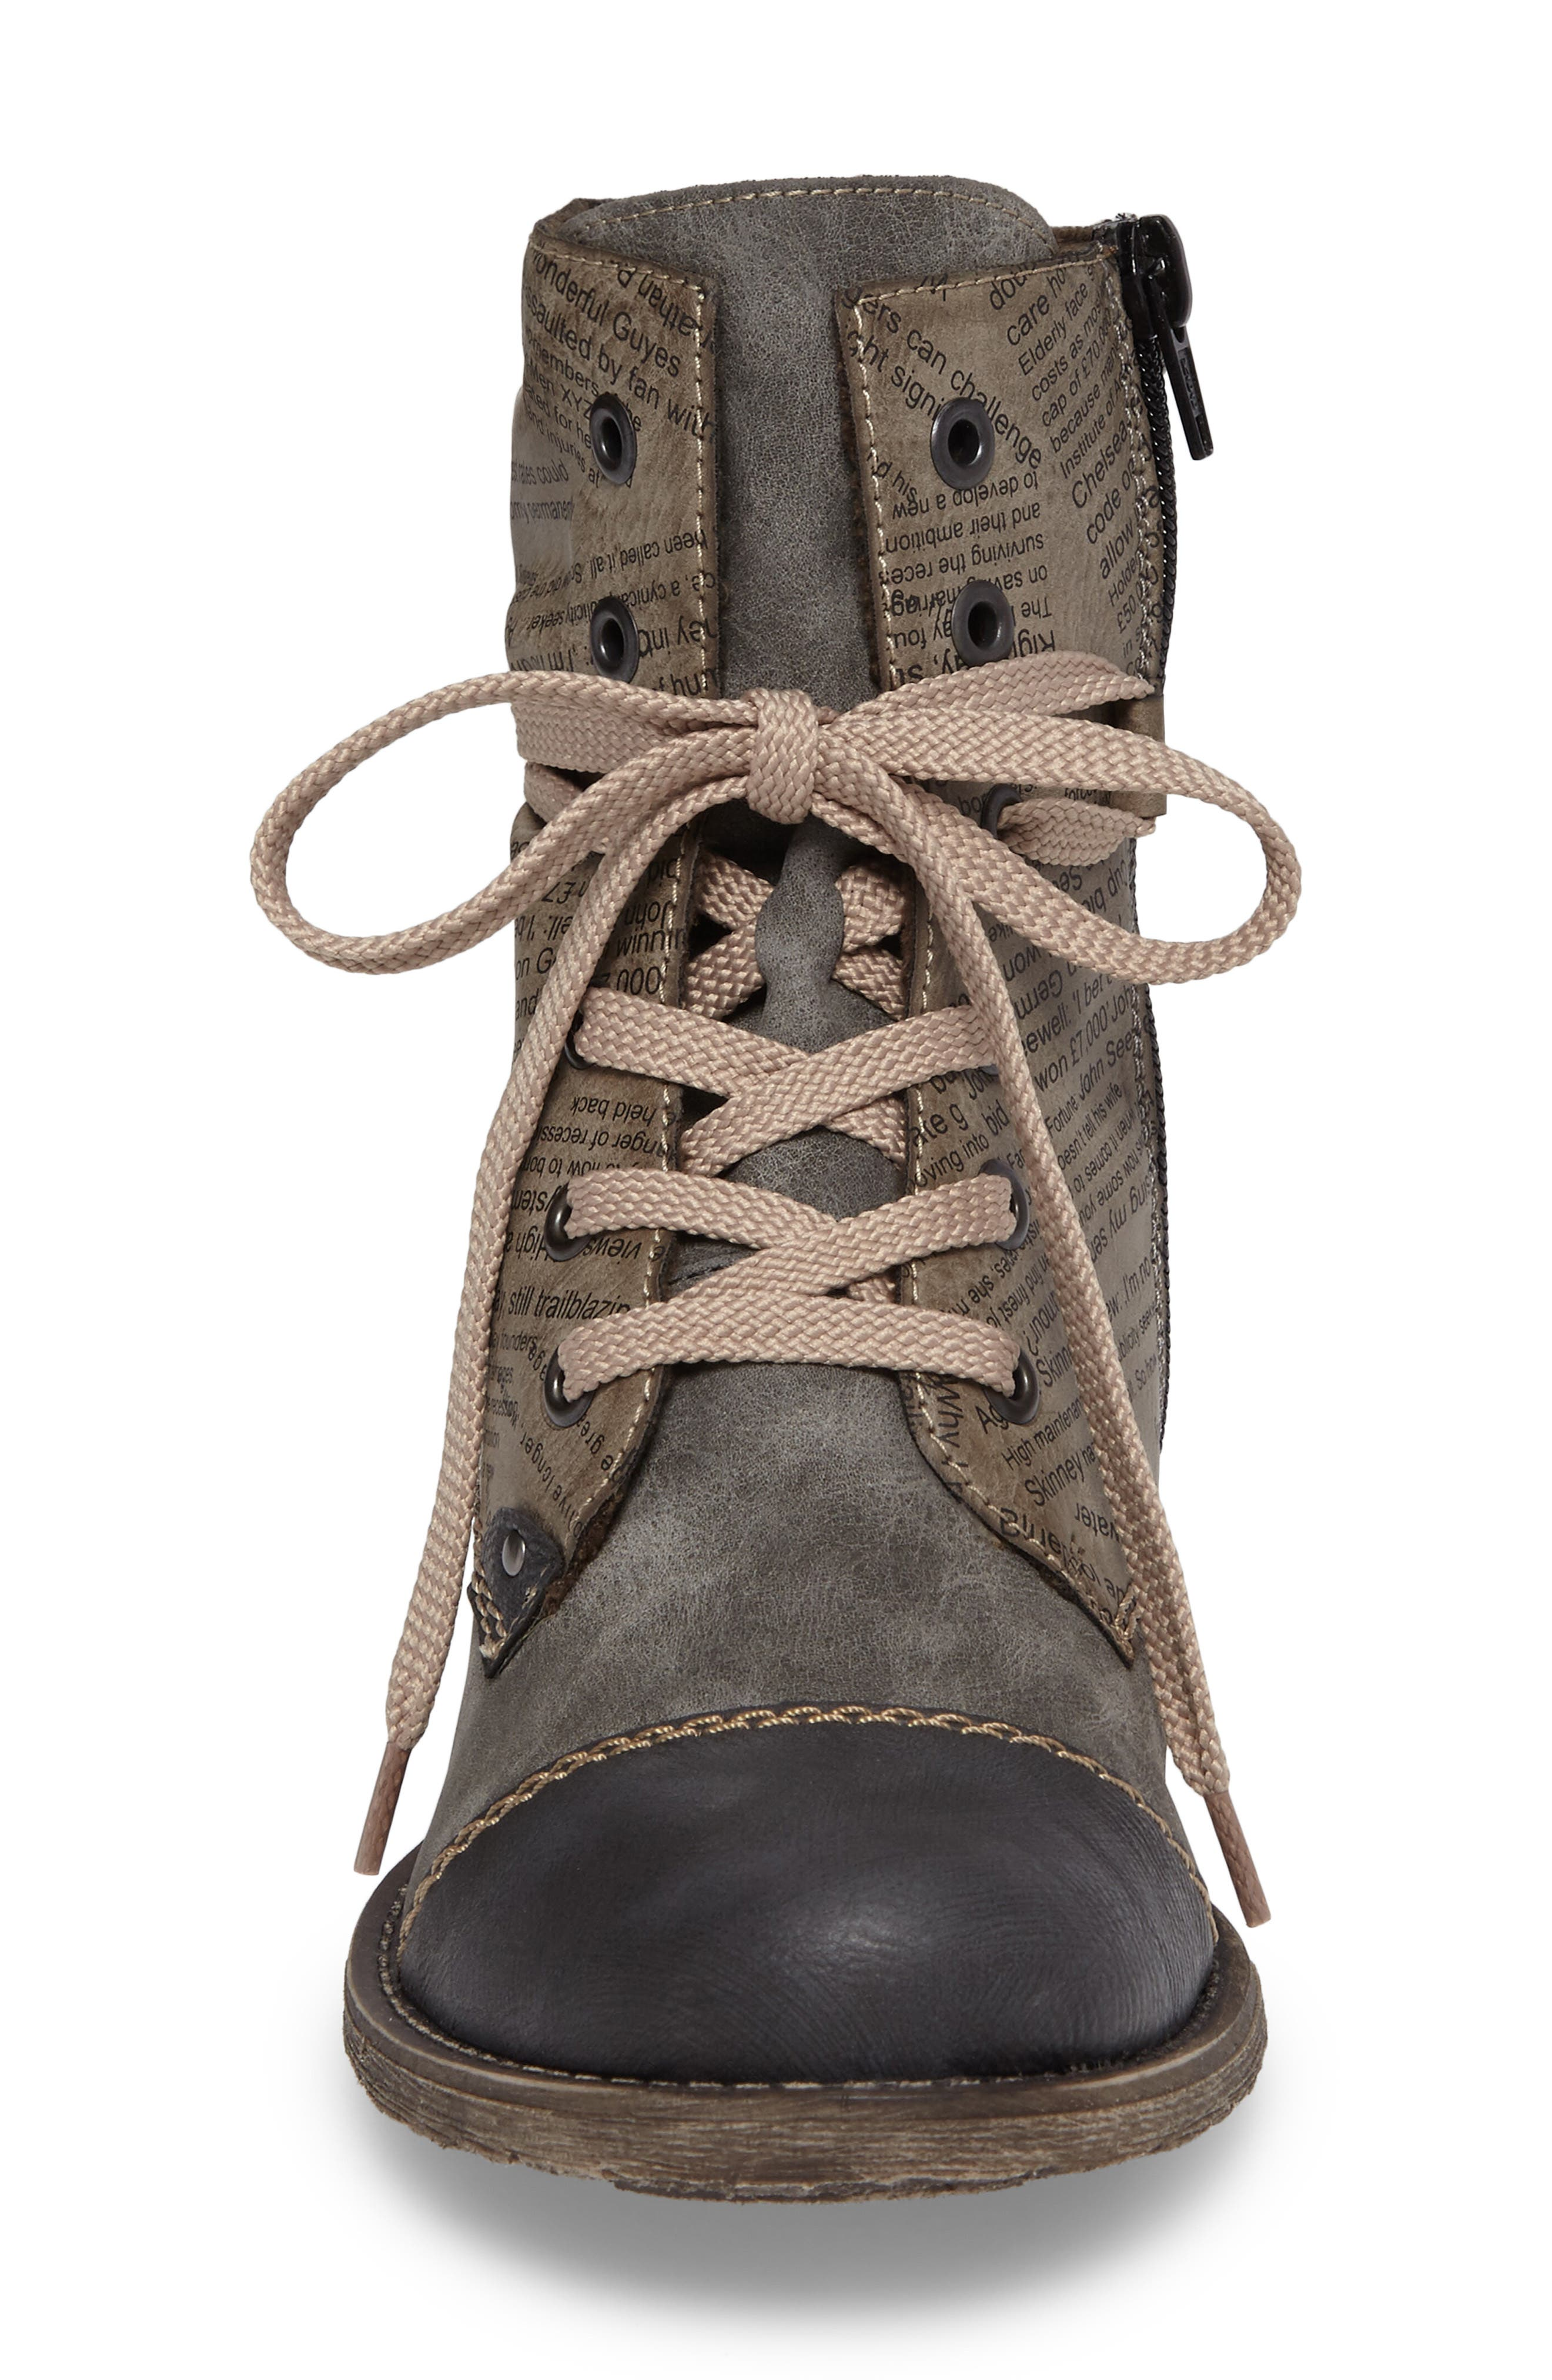 Payton 22 Lace-Up Boot,                             Alternate thumbnail 4, color,                             Smoke Faux Leather